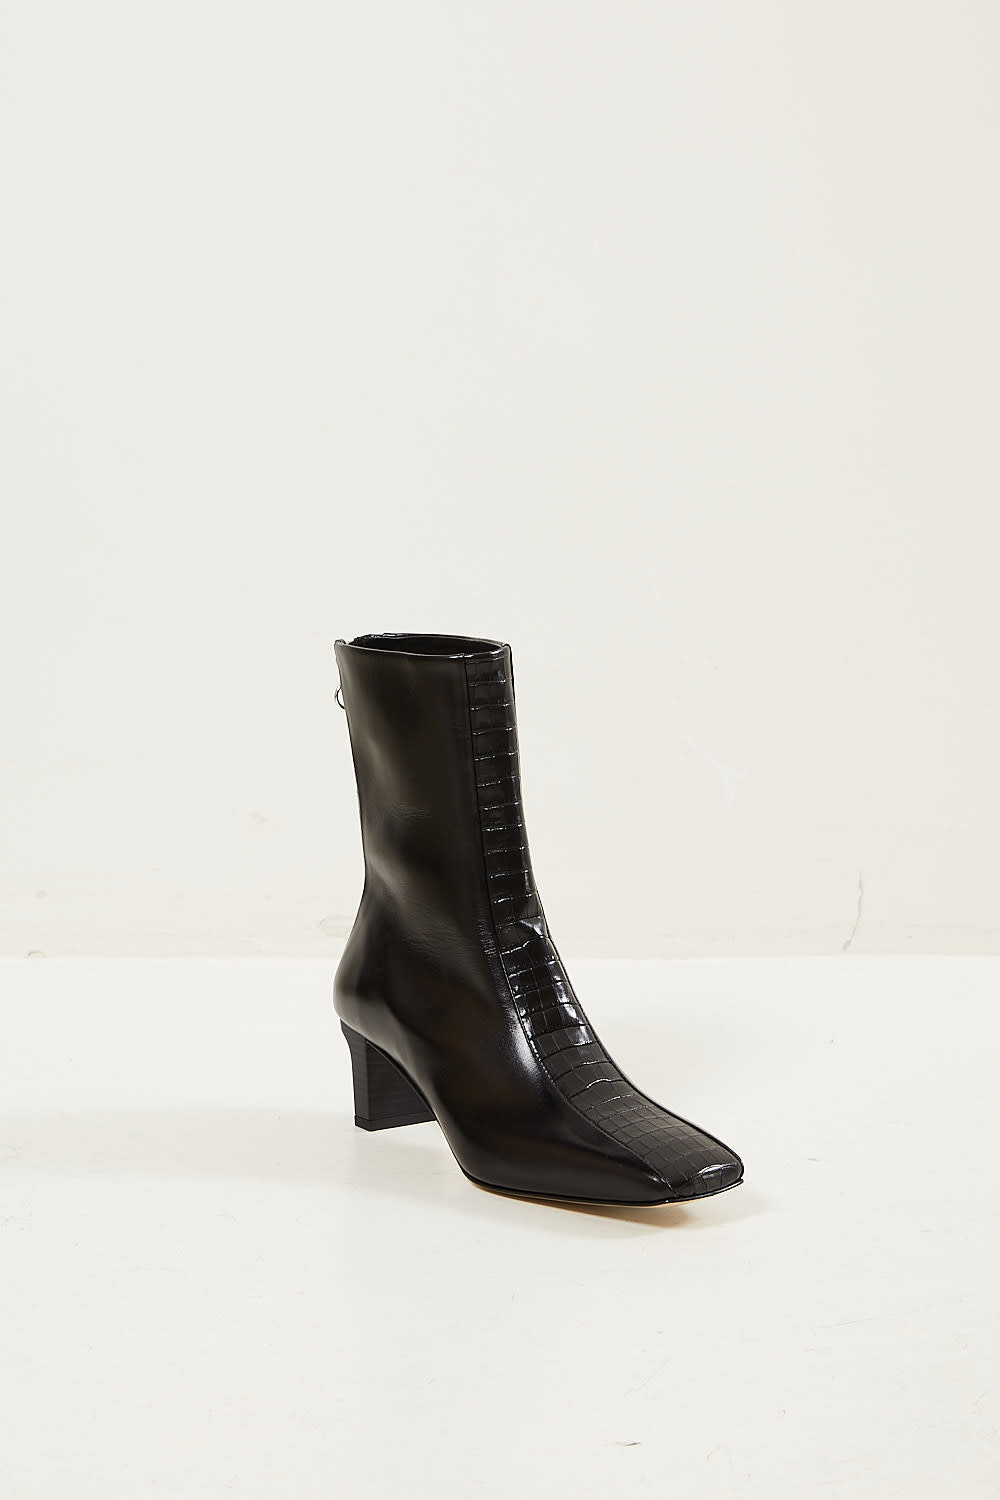 Aeyde - Molly nappa leather boots